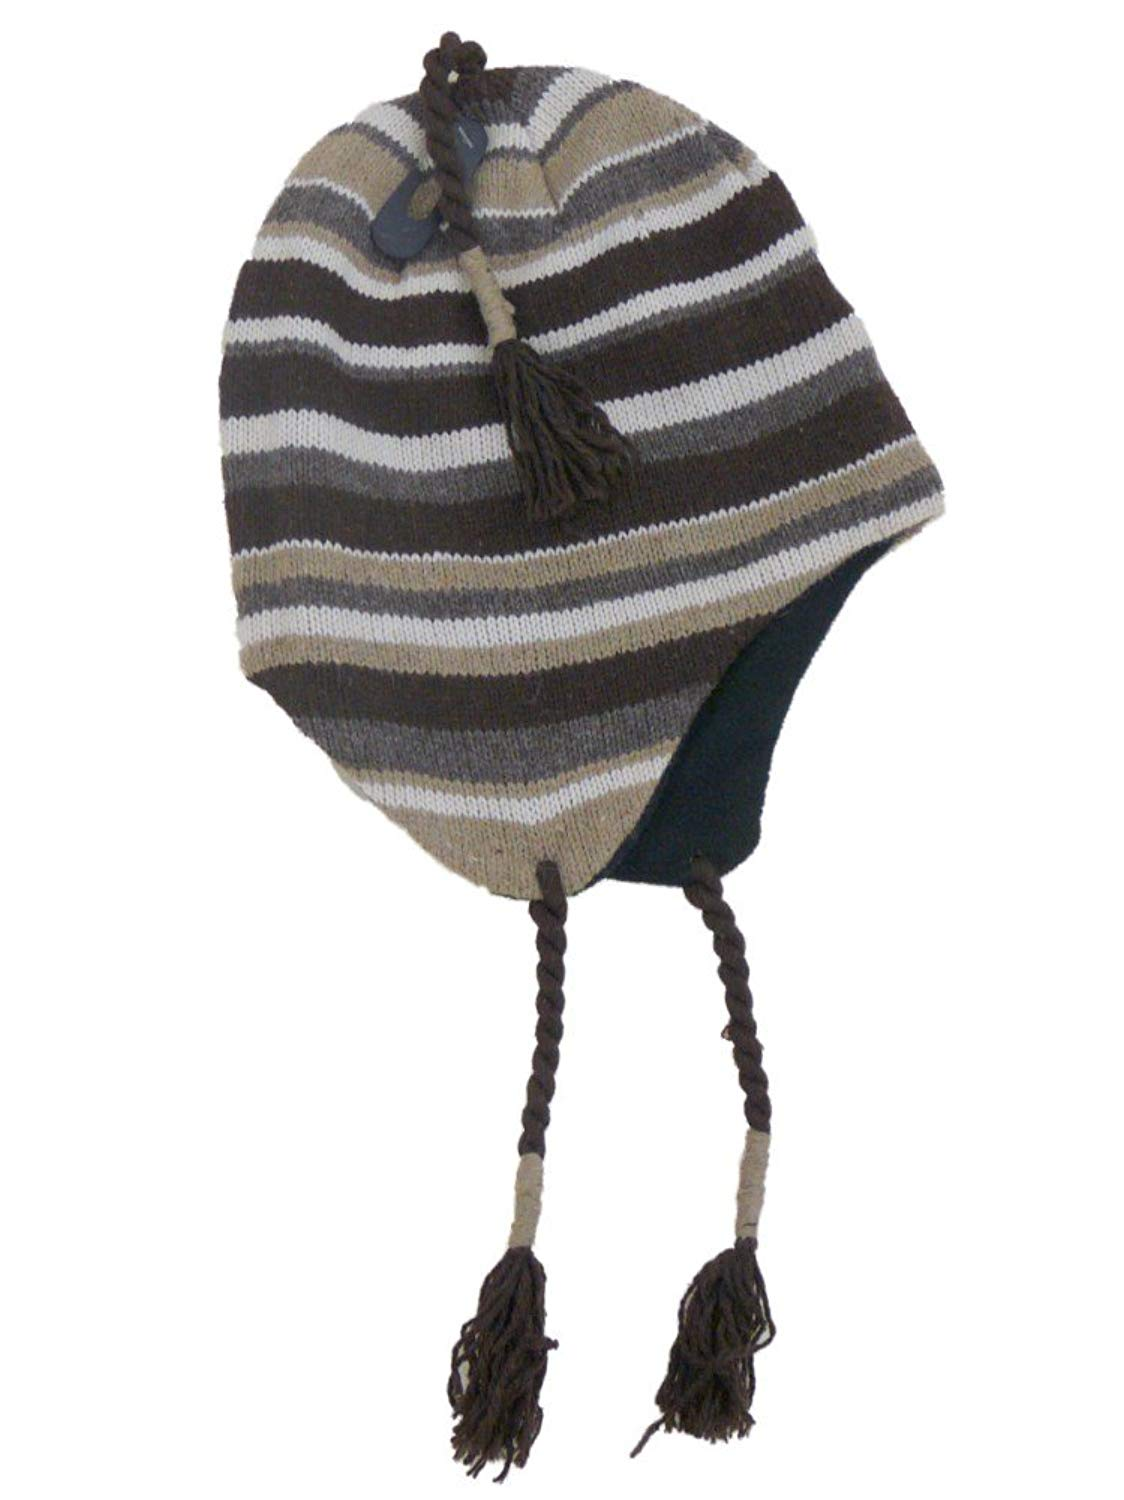 3b39f5be1a27ec Get Quotations · Igloos Mens Brown Striped Peruvian Style Trapper Hat  Fleece Lined